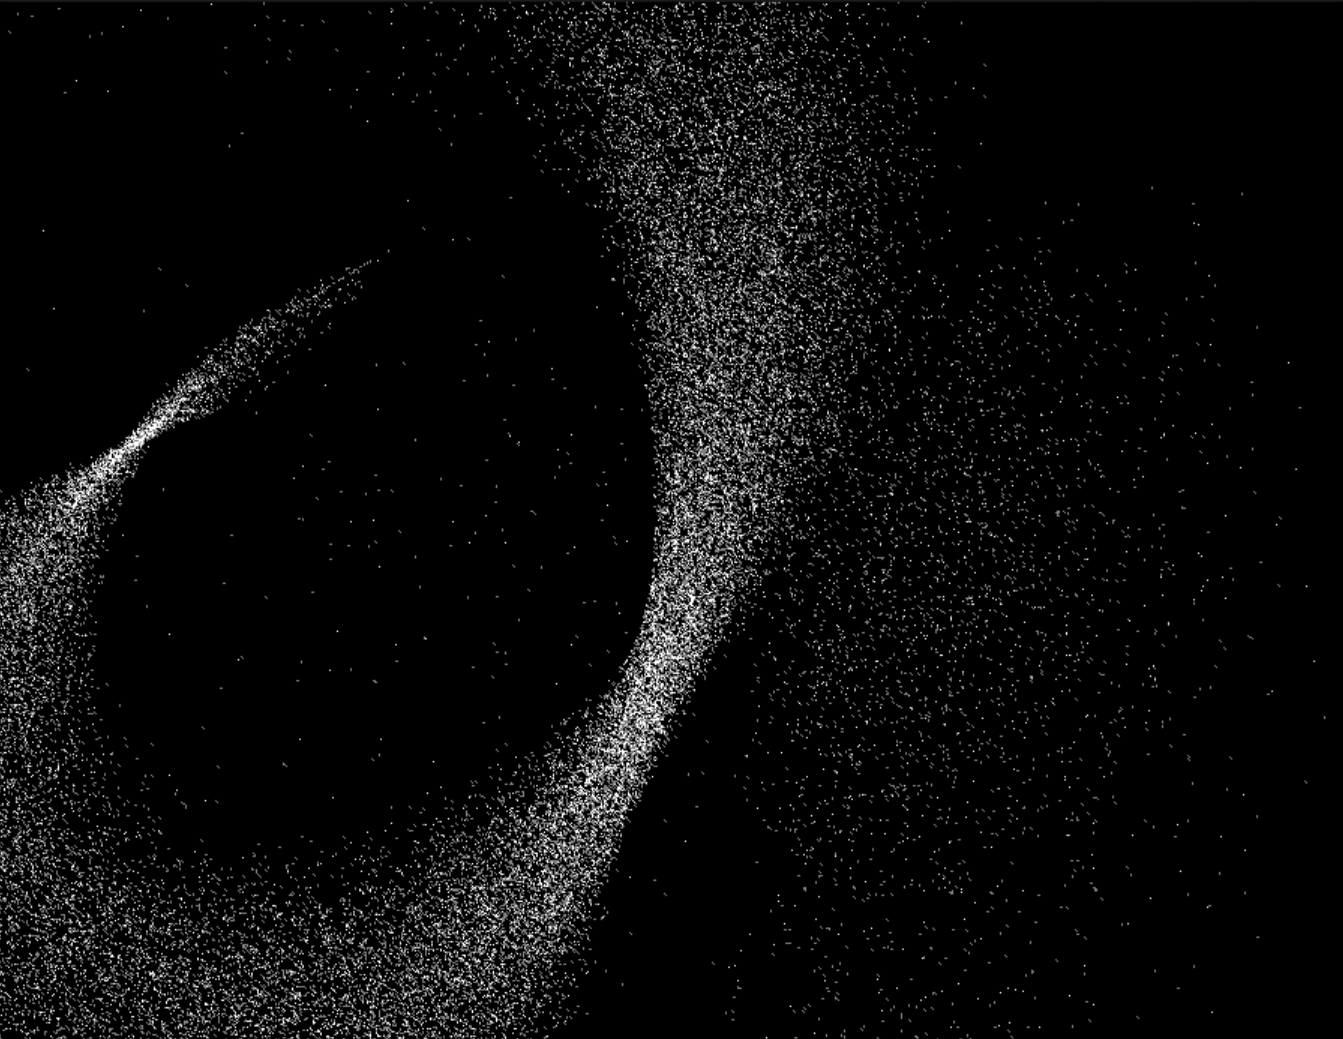 gpu-particle-example